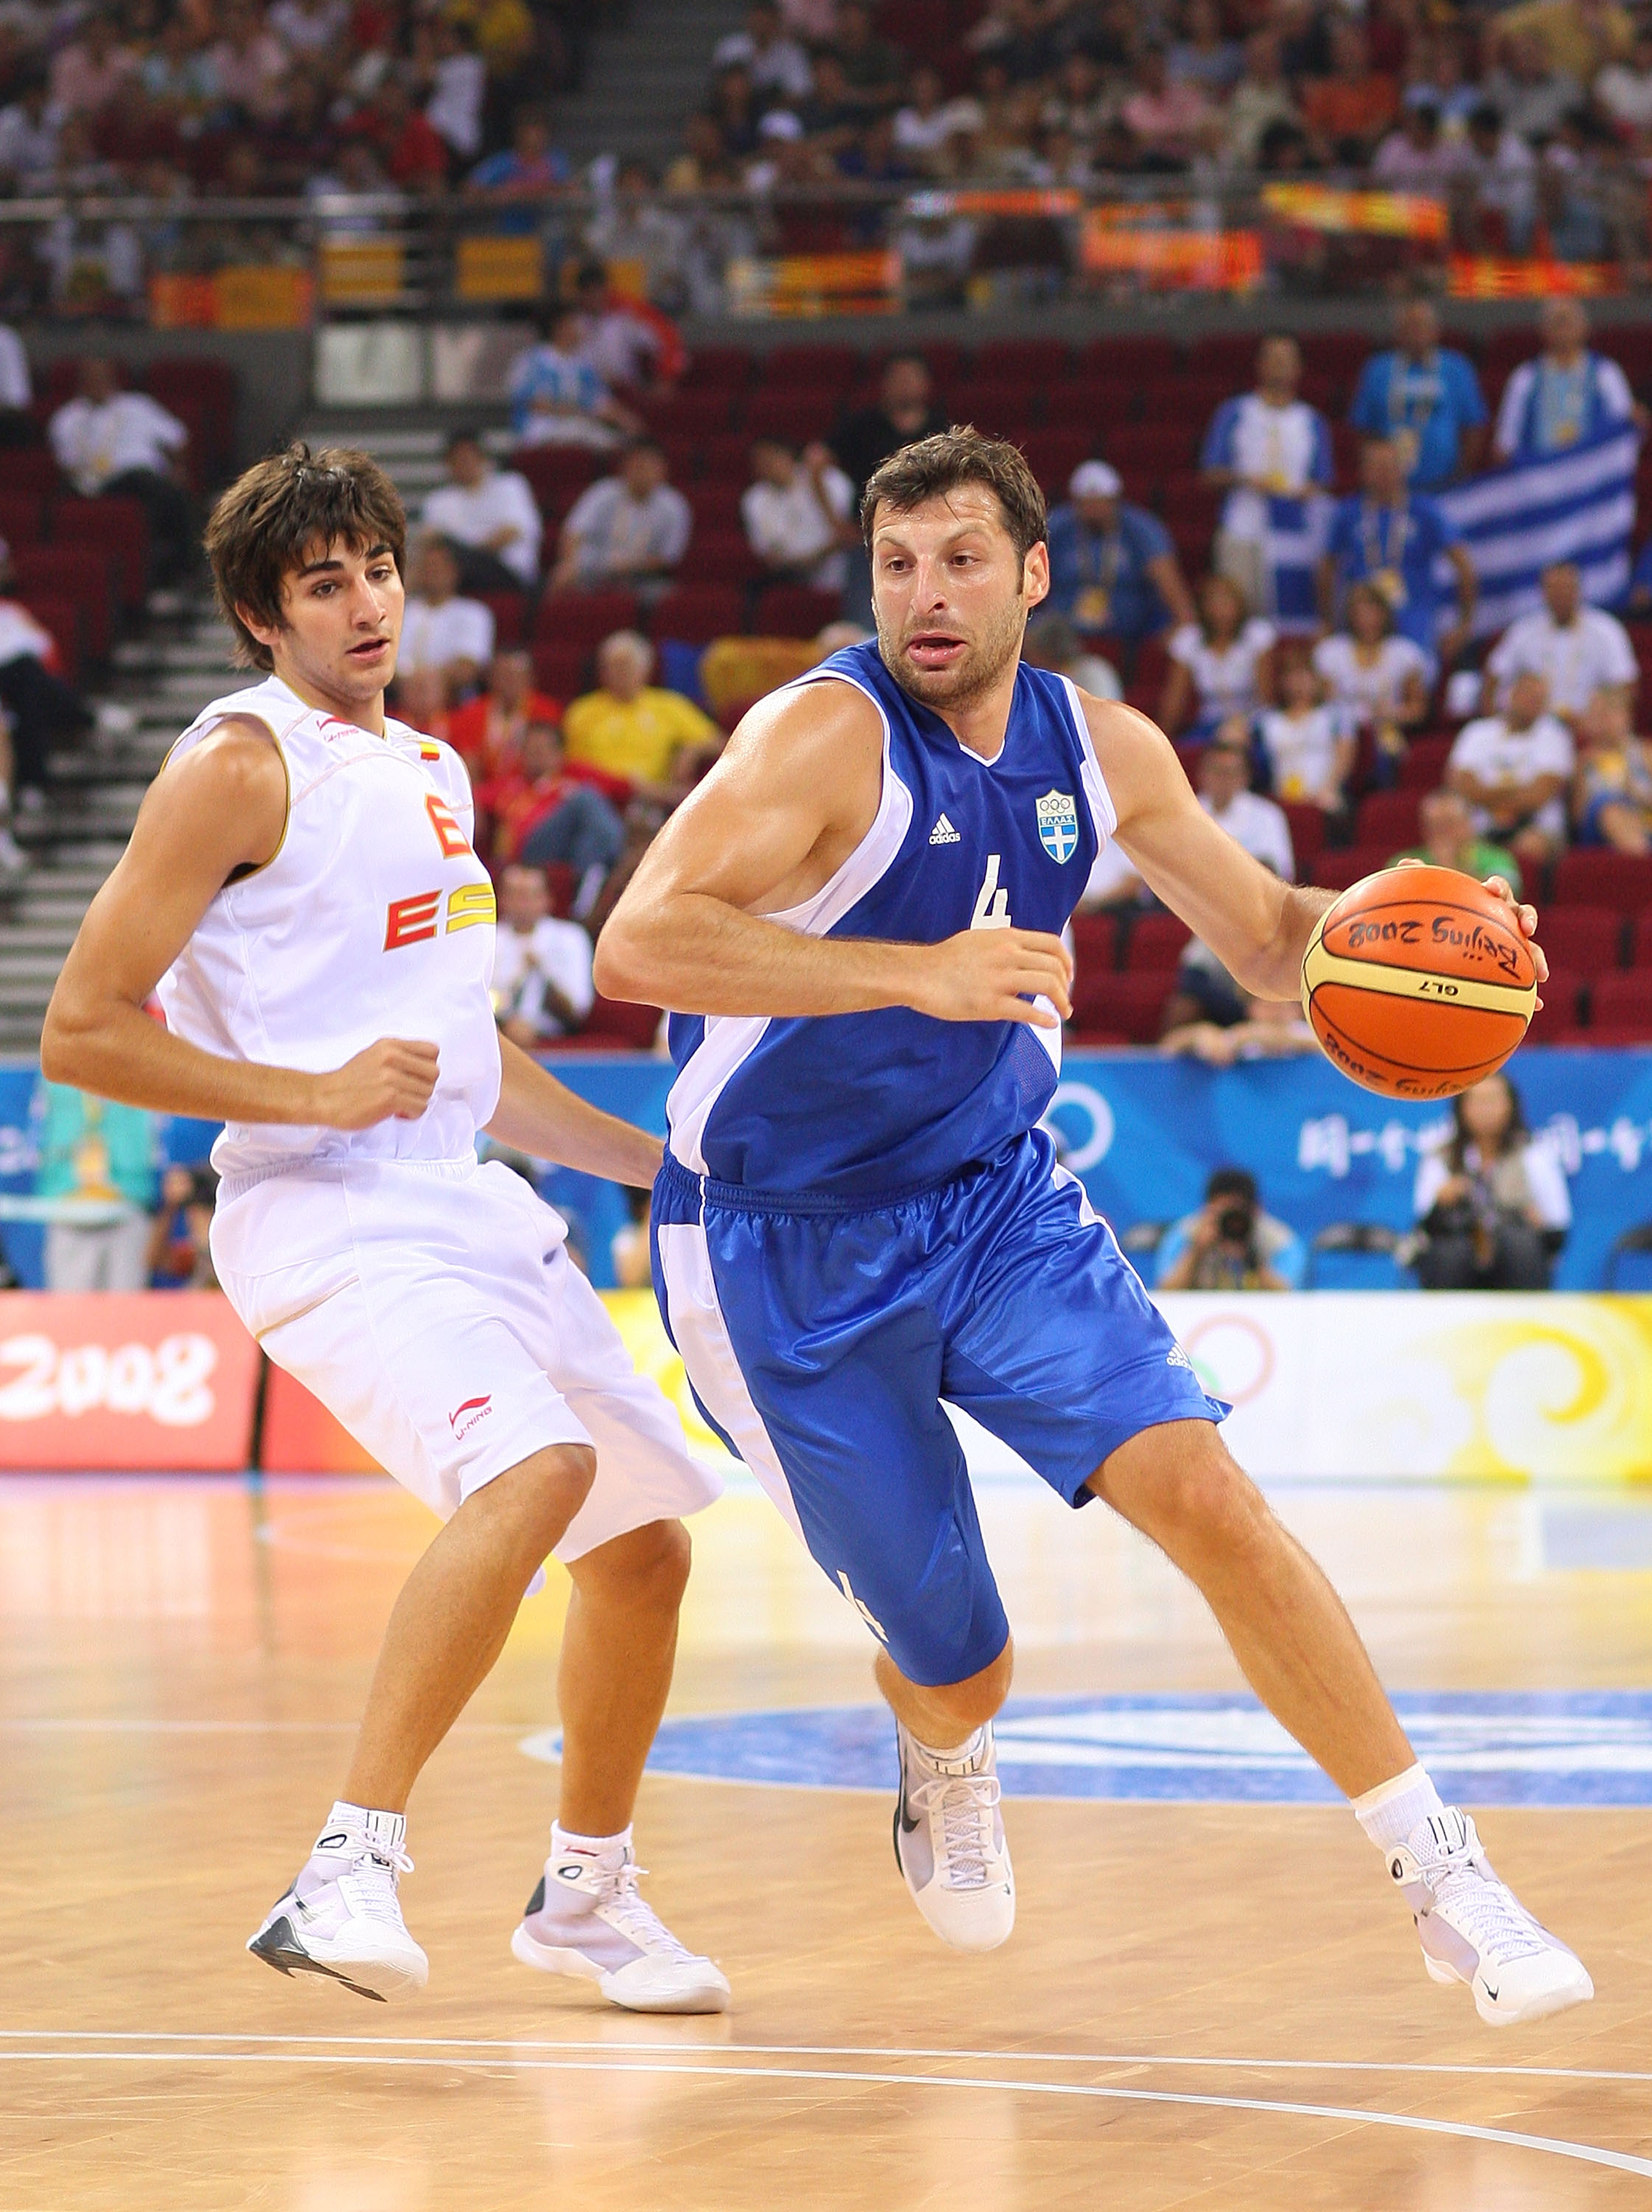 BEIJING - AUGUST 10:  Theodoros Papaloukas #4 of Greece drives on Ricky Rubio #6 of Spain during the day 2 preliminary game at the Beijing 2008 Olympic Games in the Beijing Olympic Basketball Gymnasium on August 10, 2008 in Beijing, China.  (Photo by Phil